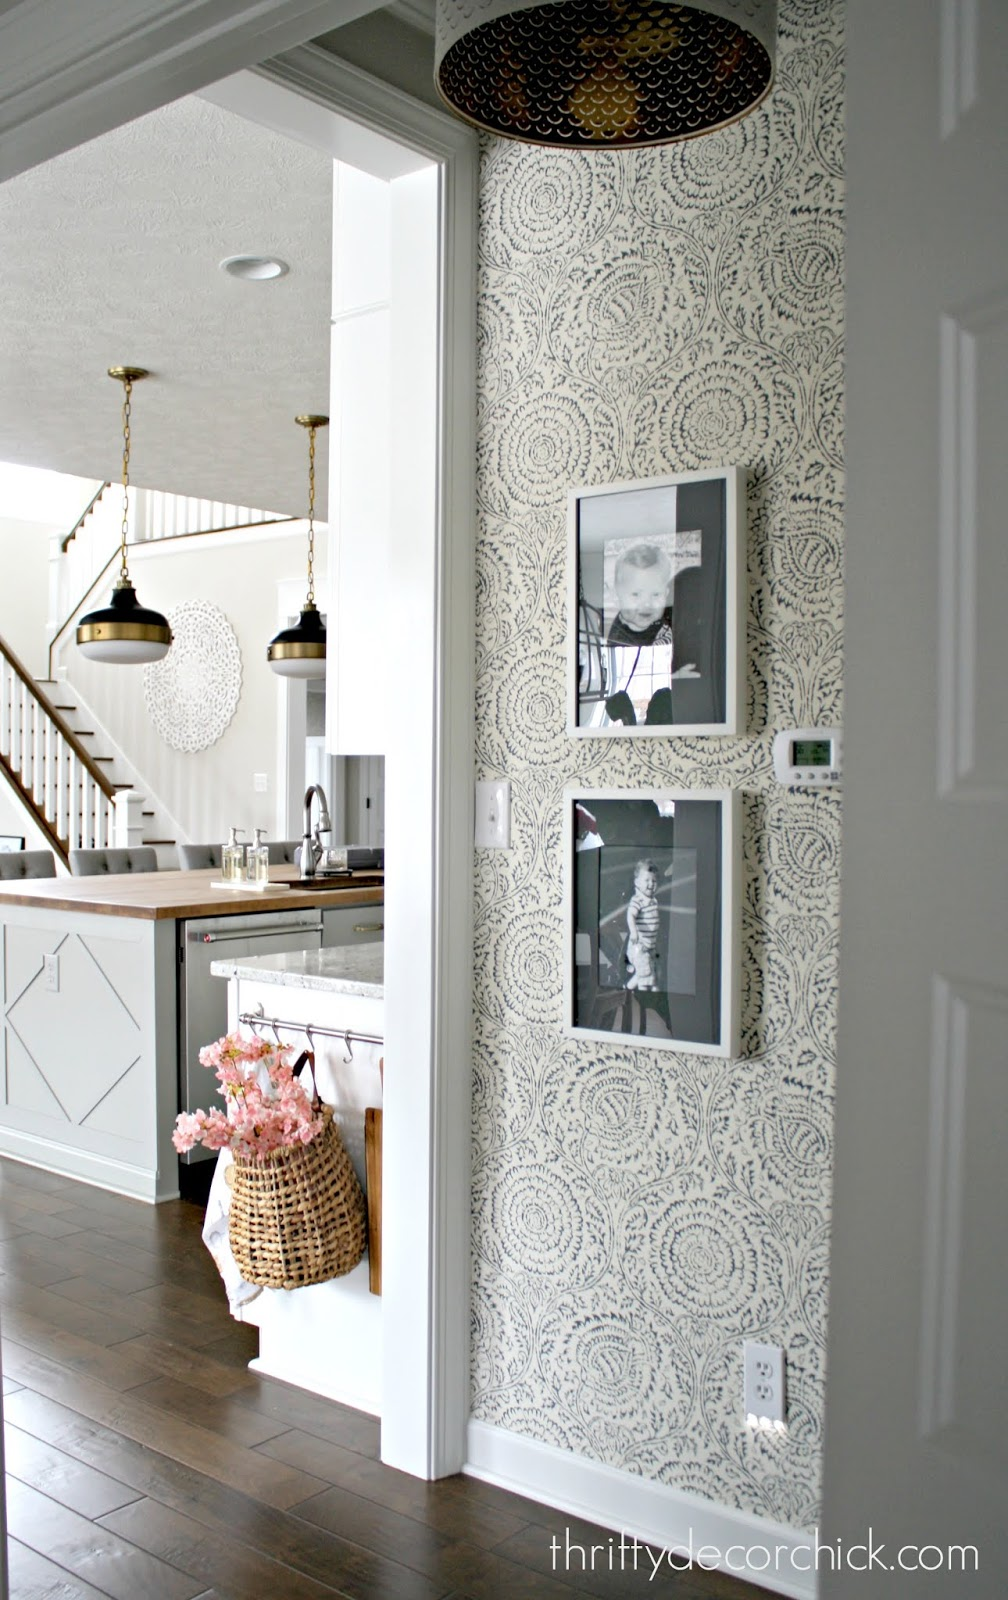 Small hallway makeover with white and blue floral wallpaper